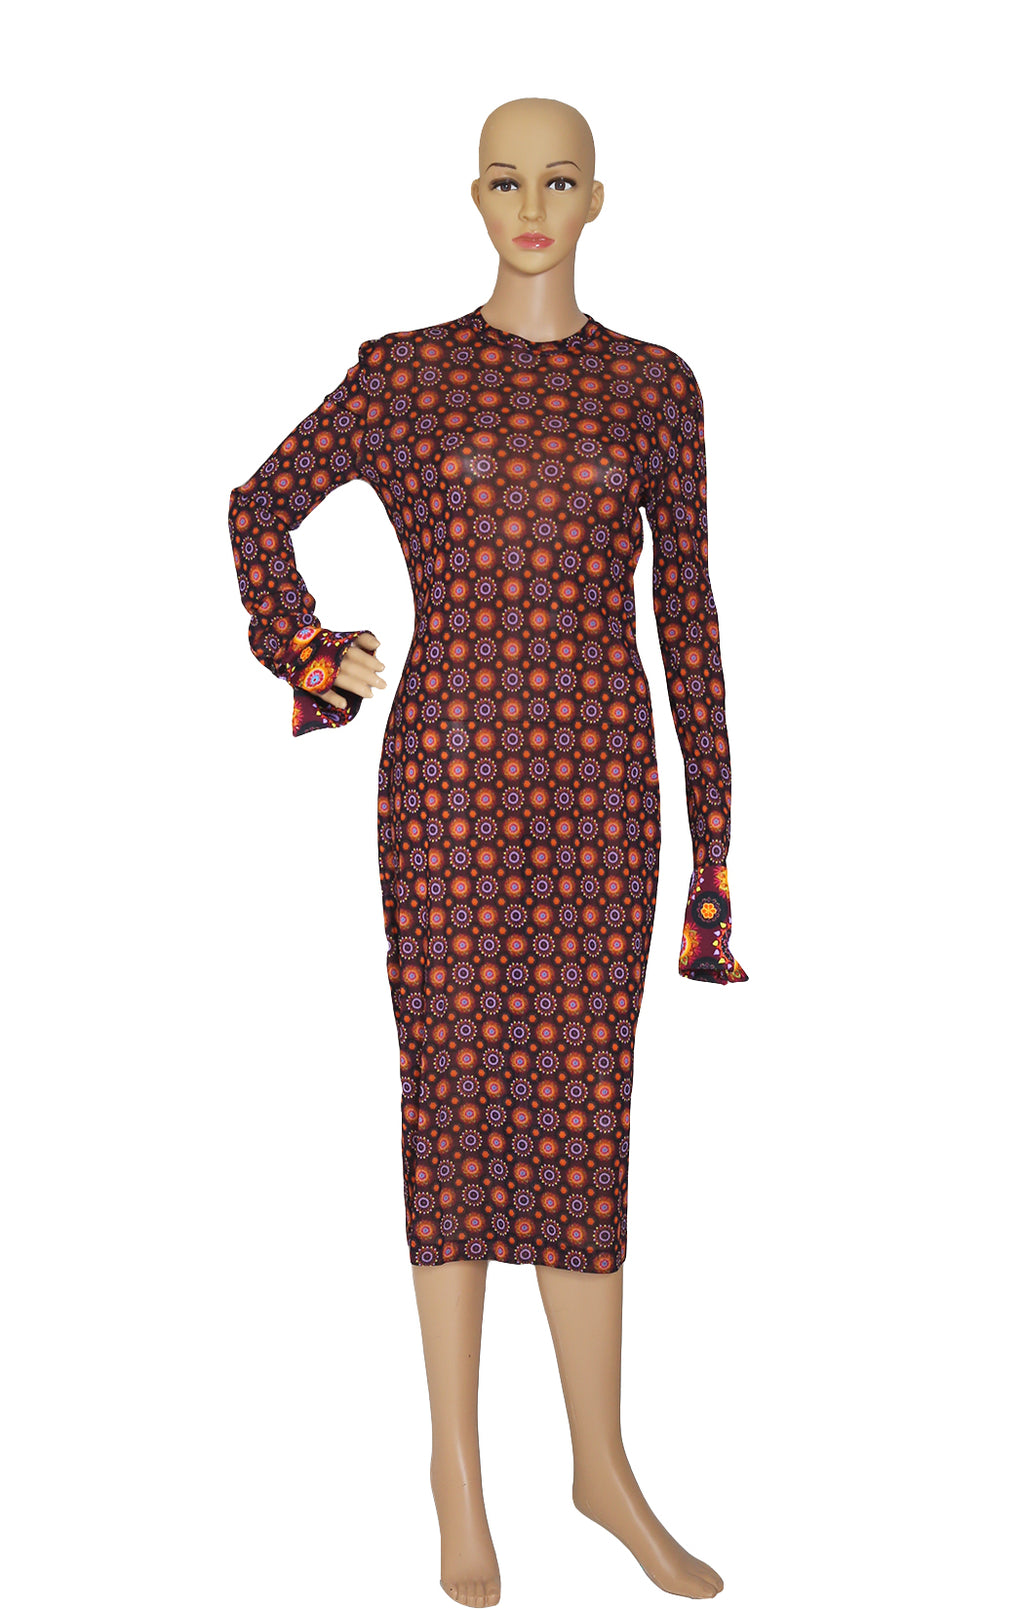 Front view of GIVENCHY Print Dress Size: FR 40 (US 8)